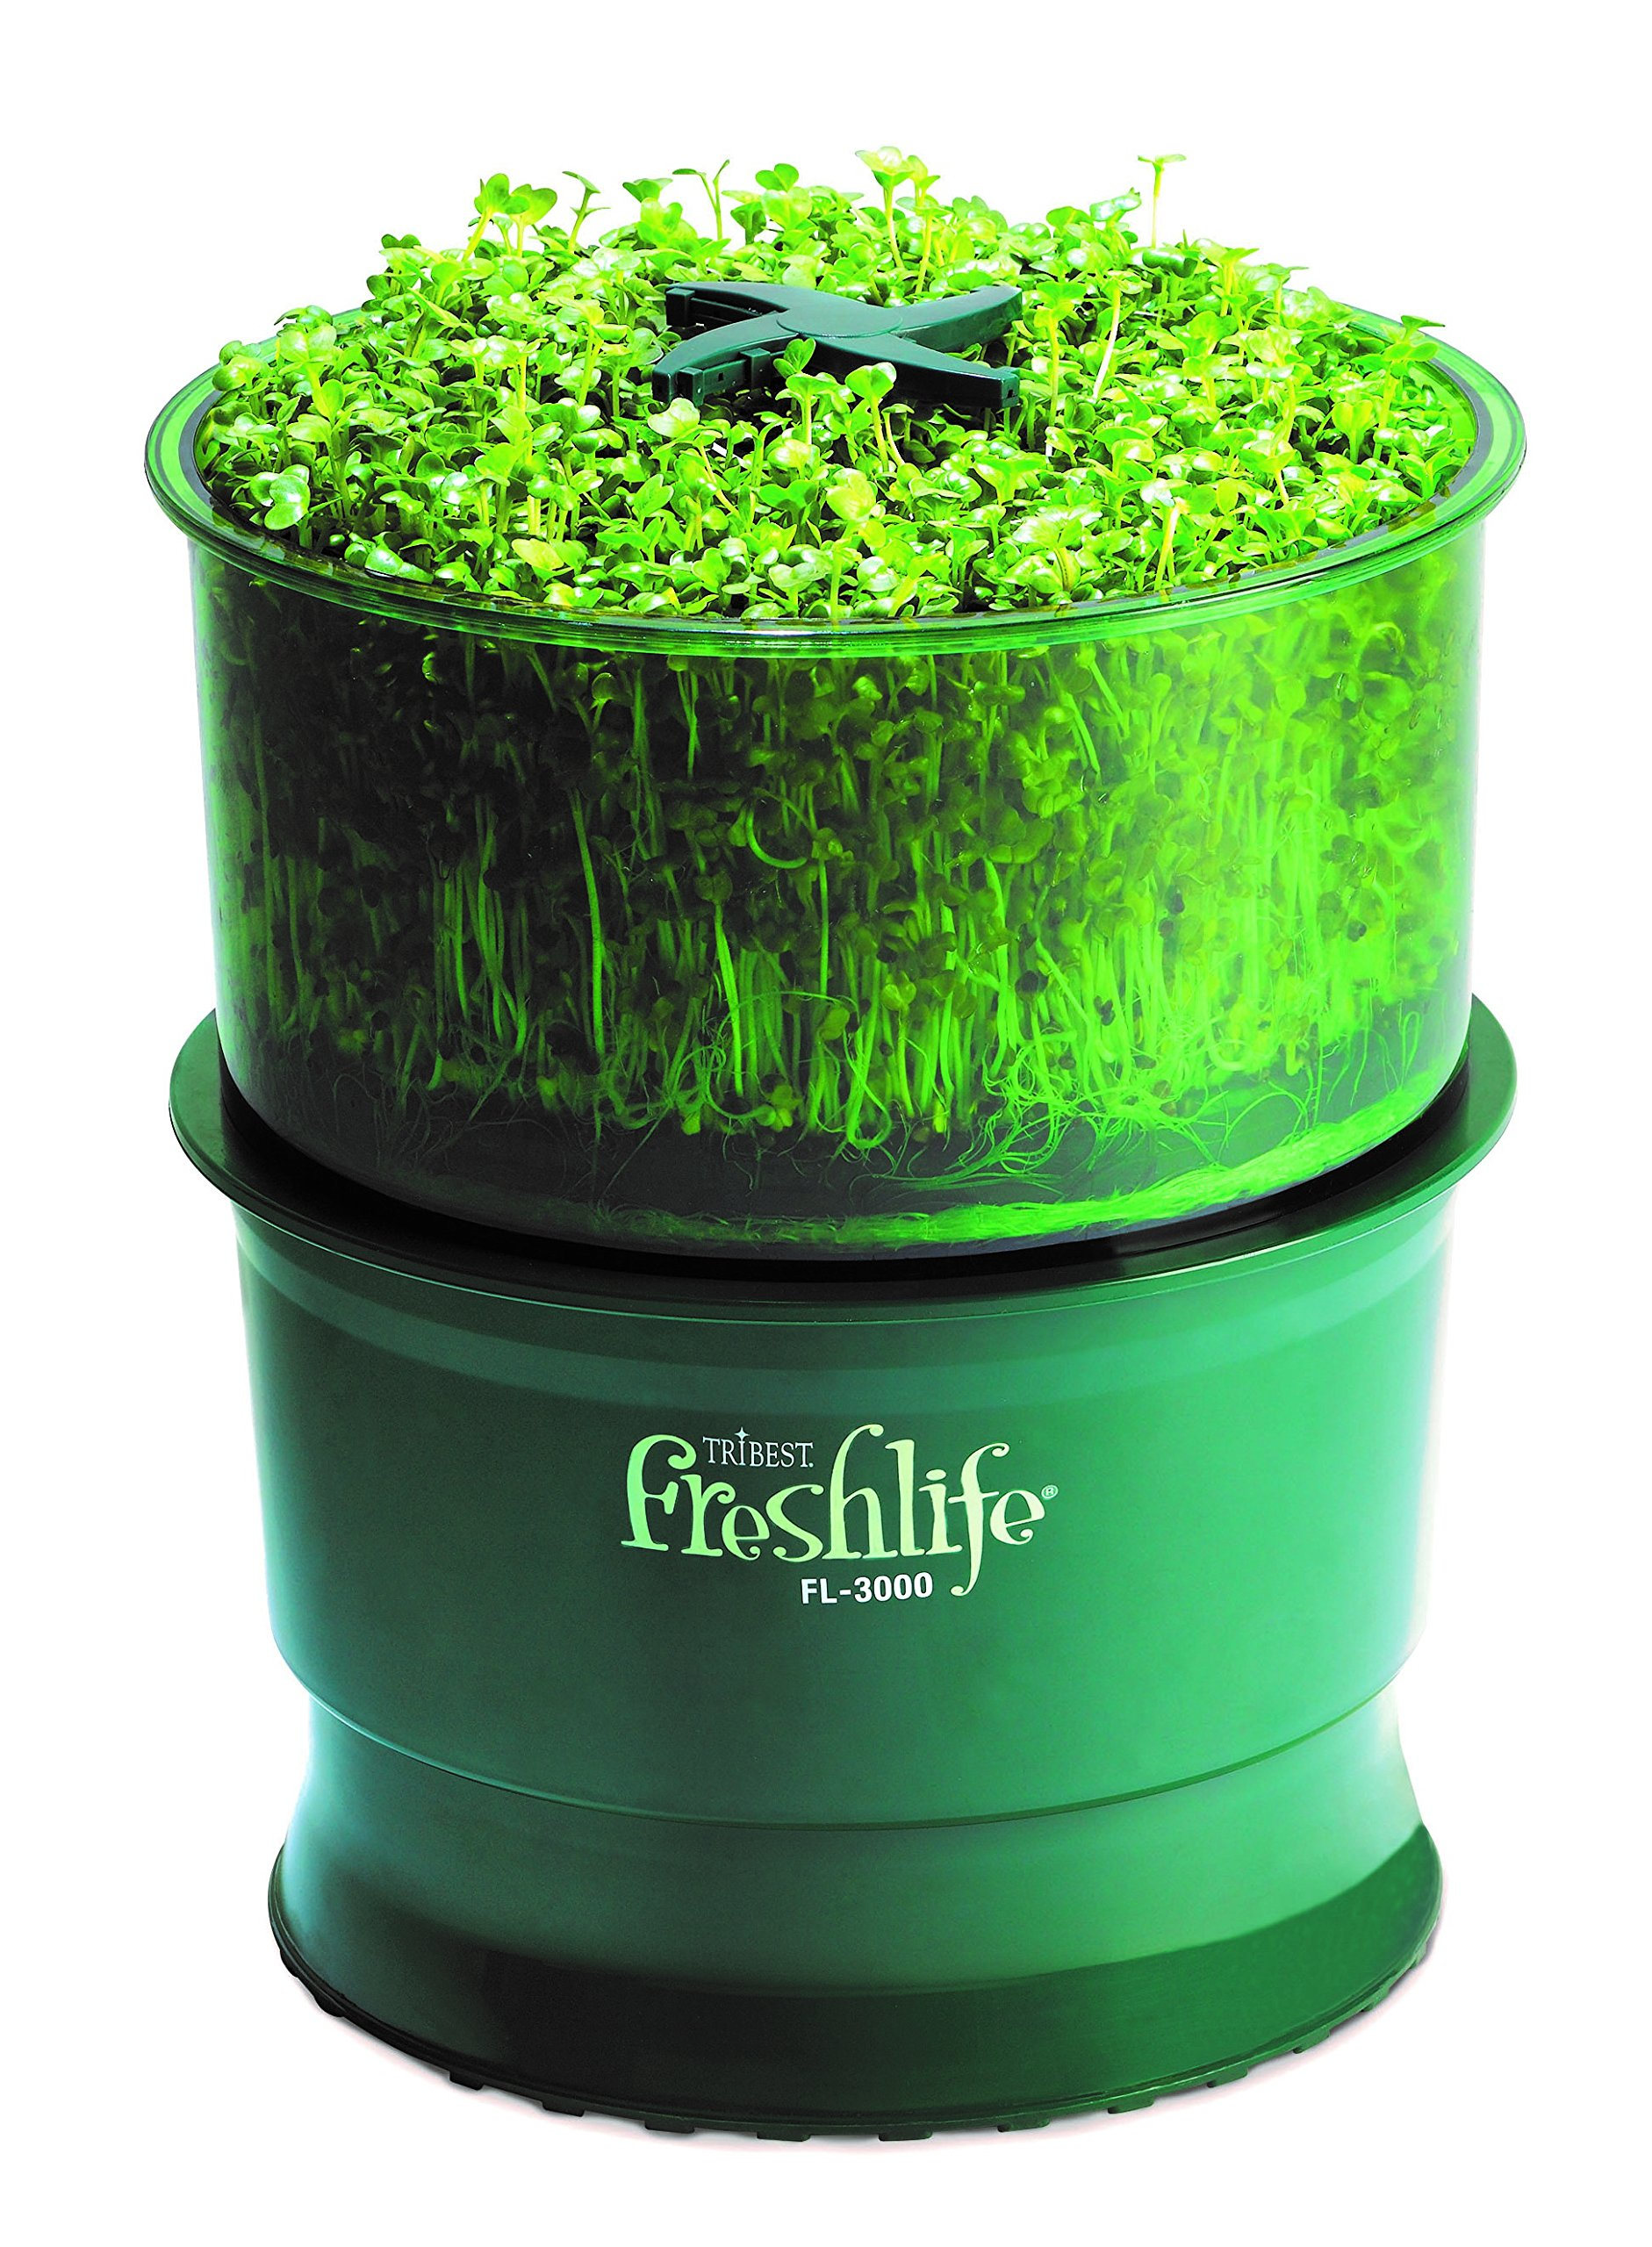 Tribest FL-3000 Freshlife 3000  Automatic Sprouter, Green by Tribest (Image #1)